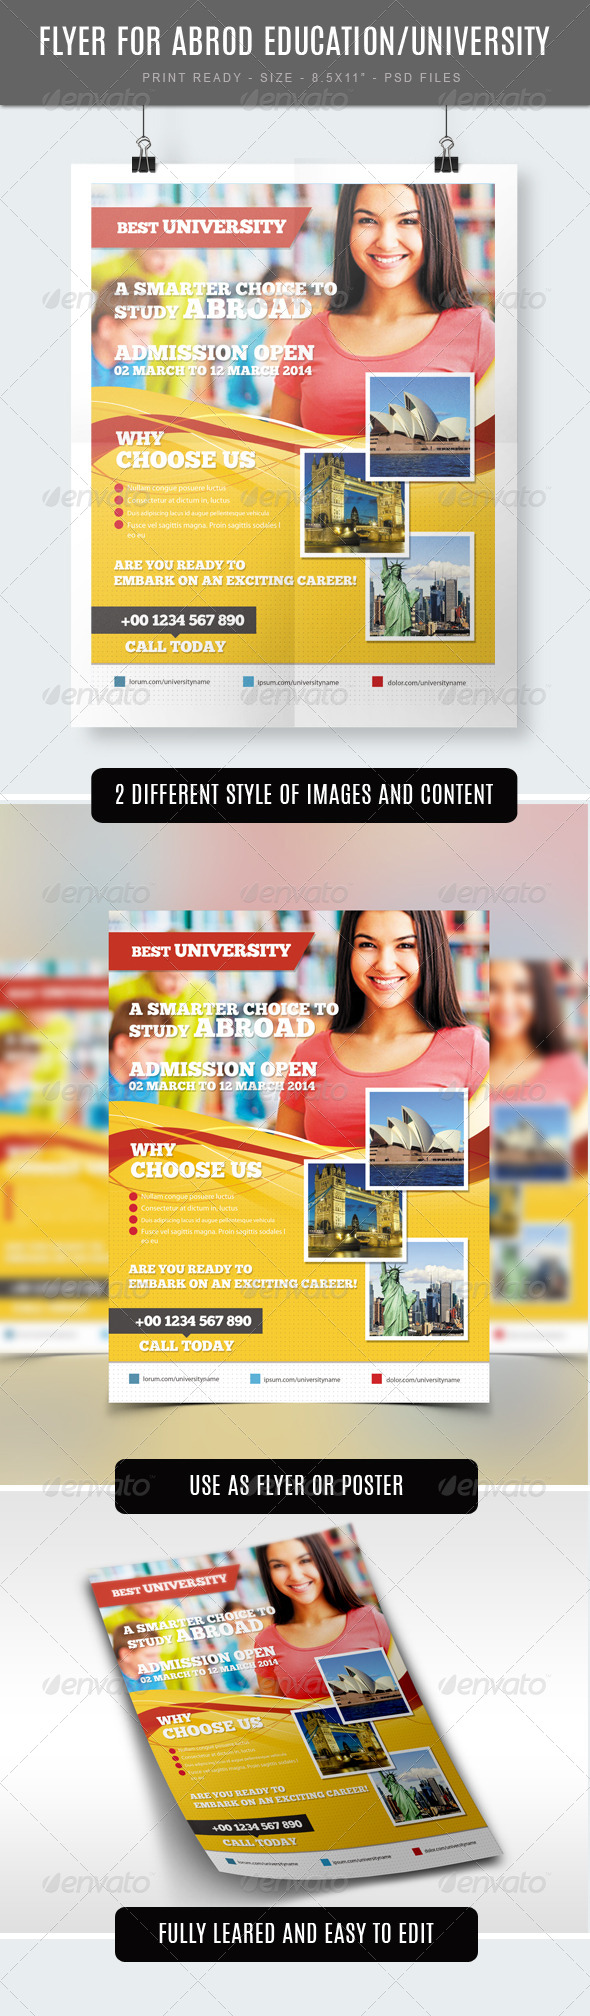 GraphicRiver Study Abroad University College Flyer Template 7584453